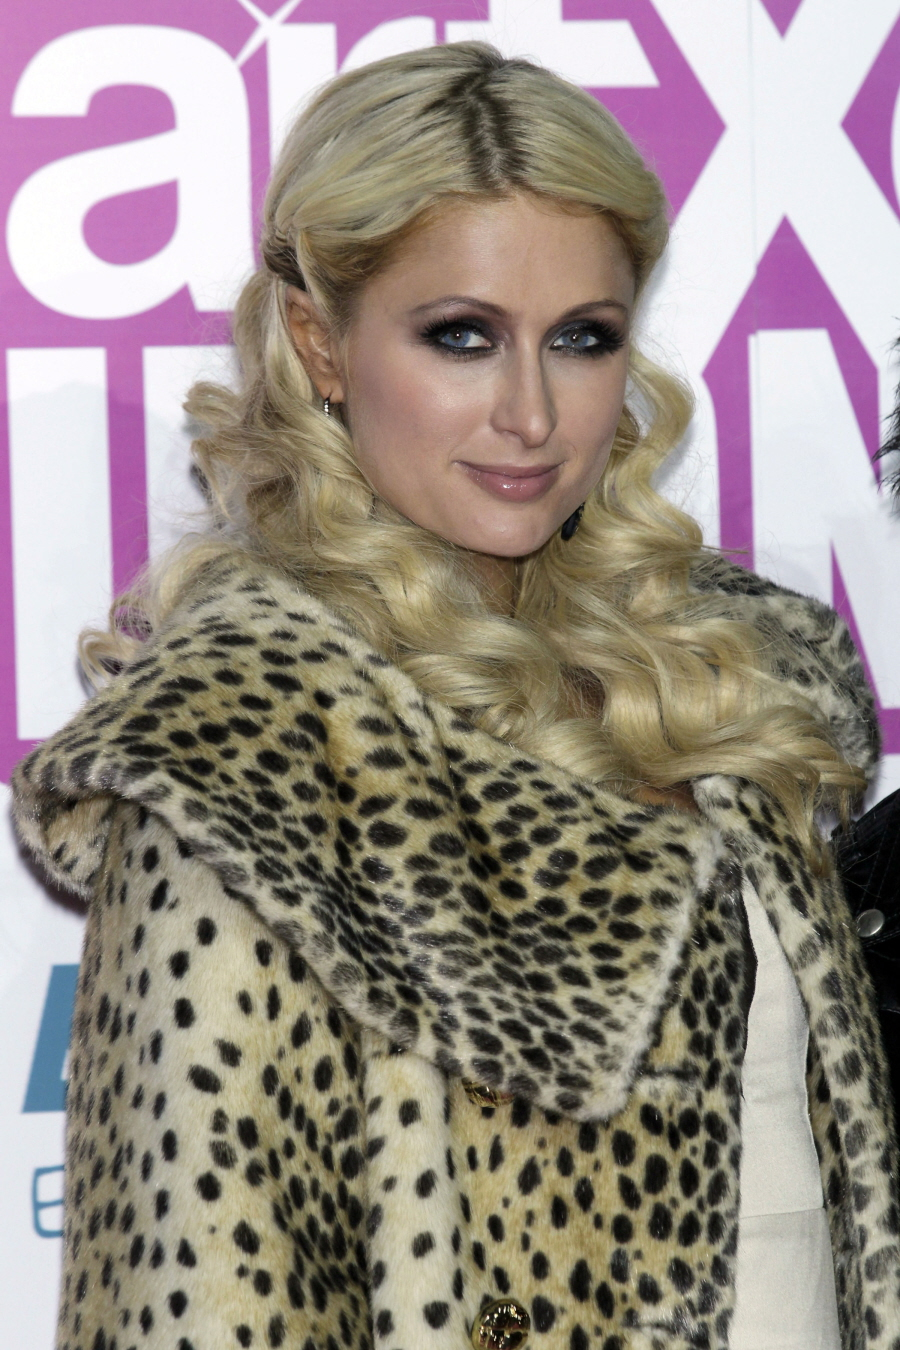 Paris Hilton Makeup Images